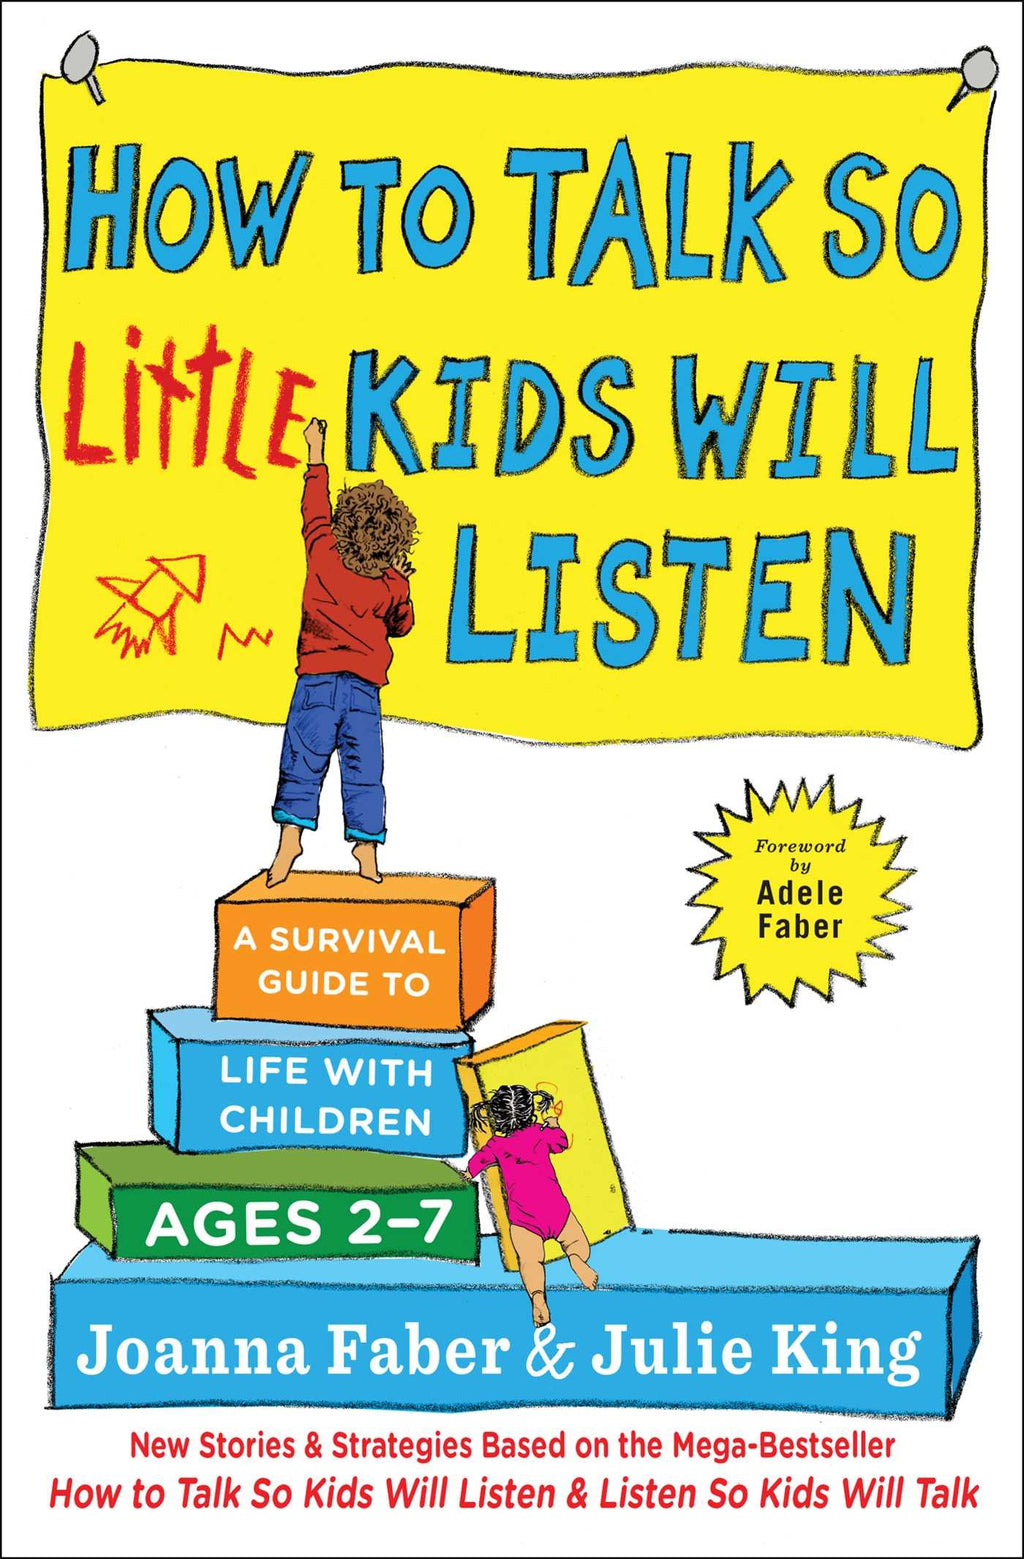 How to talk so little kids will listen and listen so kids will talk,